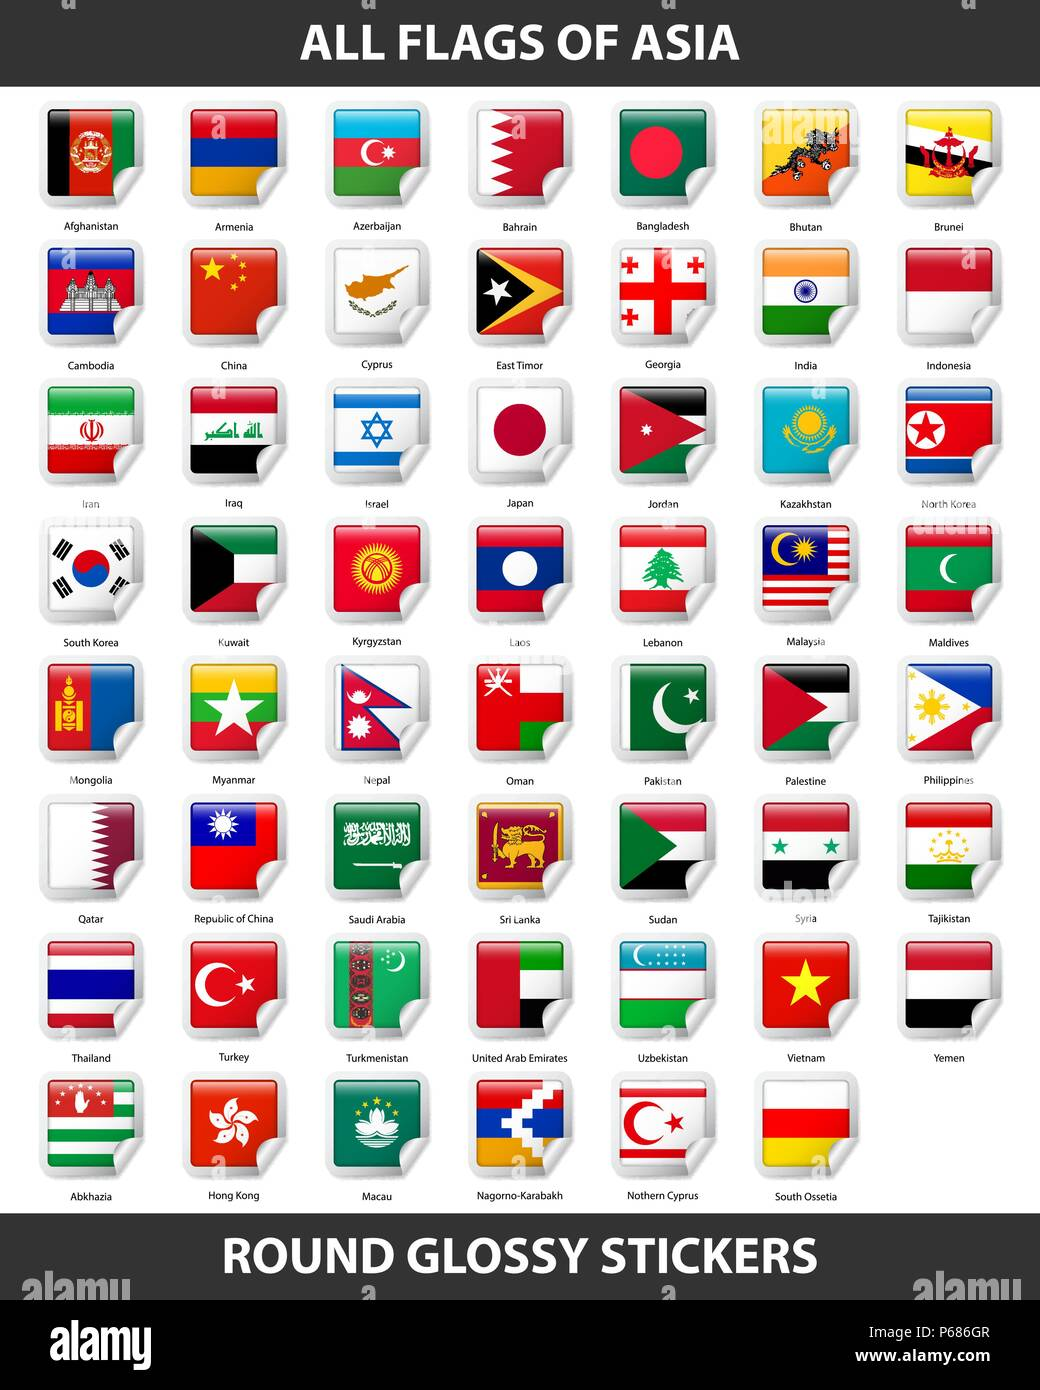 Flags of all countries of Asia. Round Glossy Stickers - Stock Vector